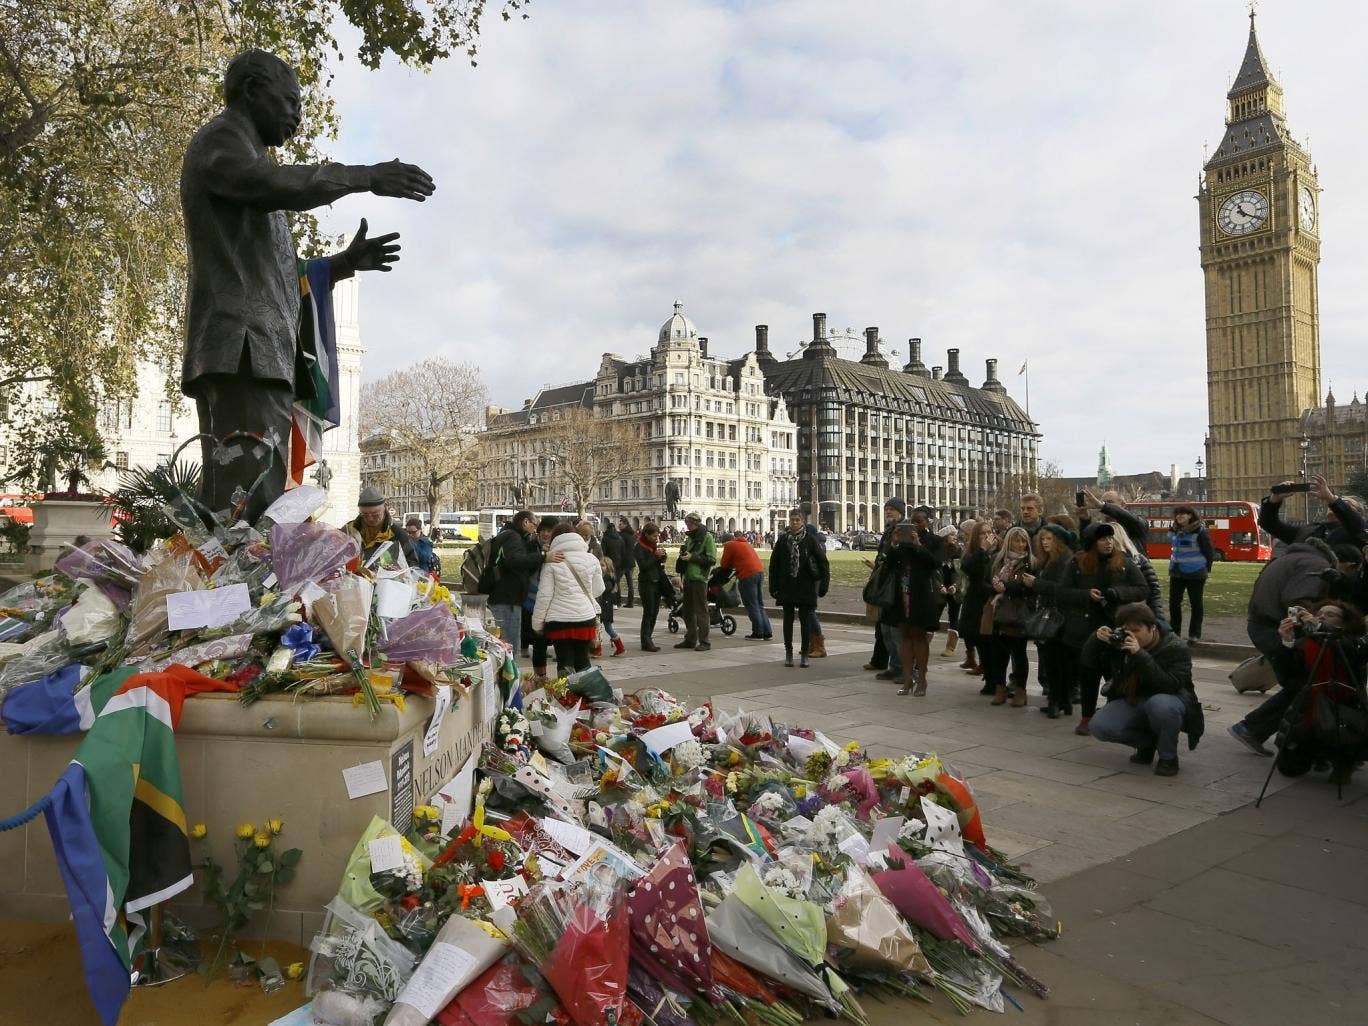 People gather to look at flowers and tributes left at the statue of Nelson Mandela in Parliament Square, London